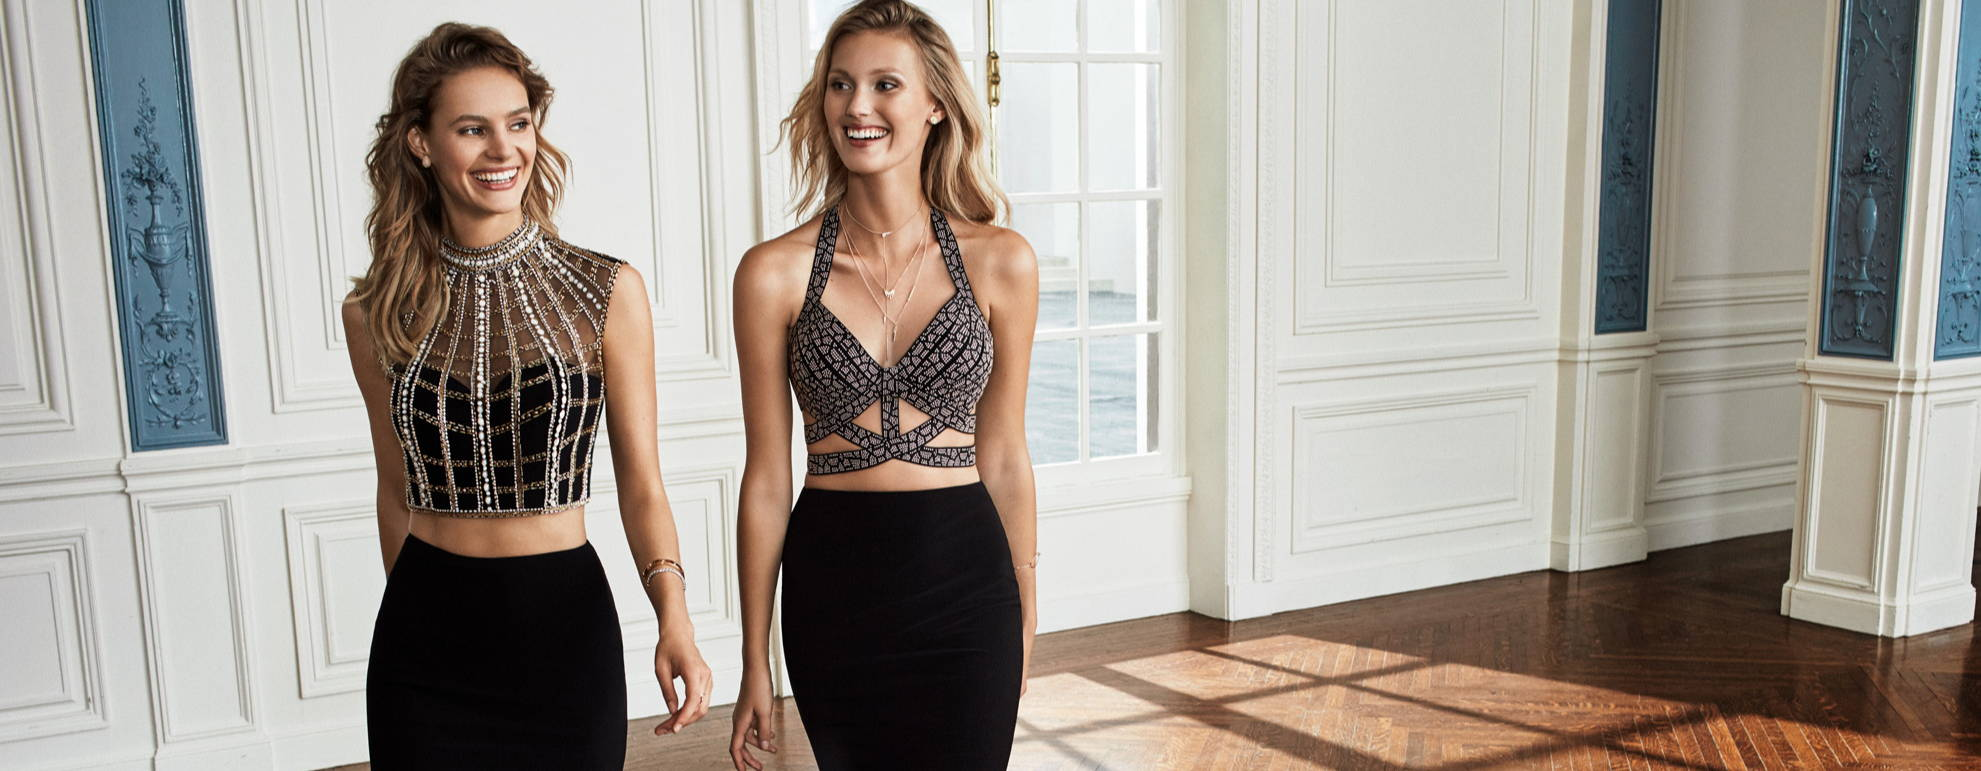 Shop Red Carpet Ready Dresses up to 90% off